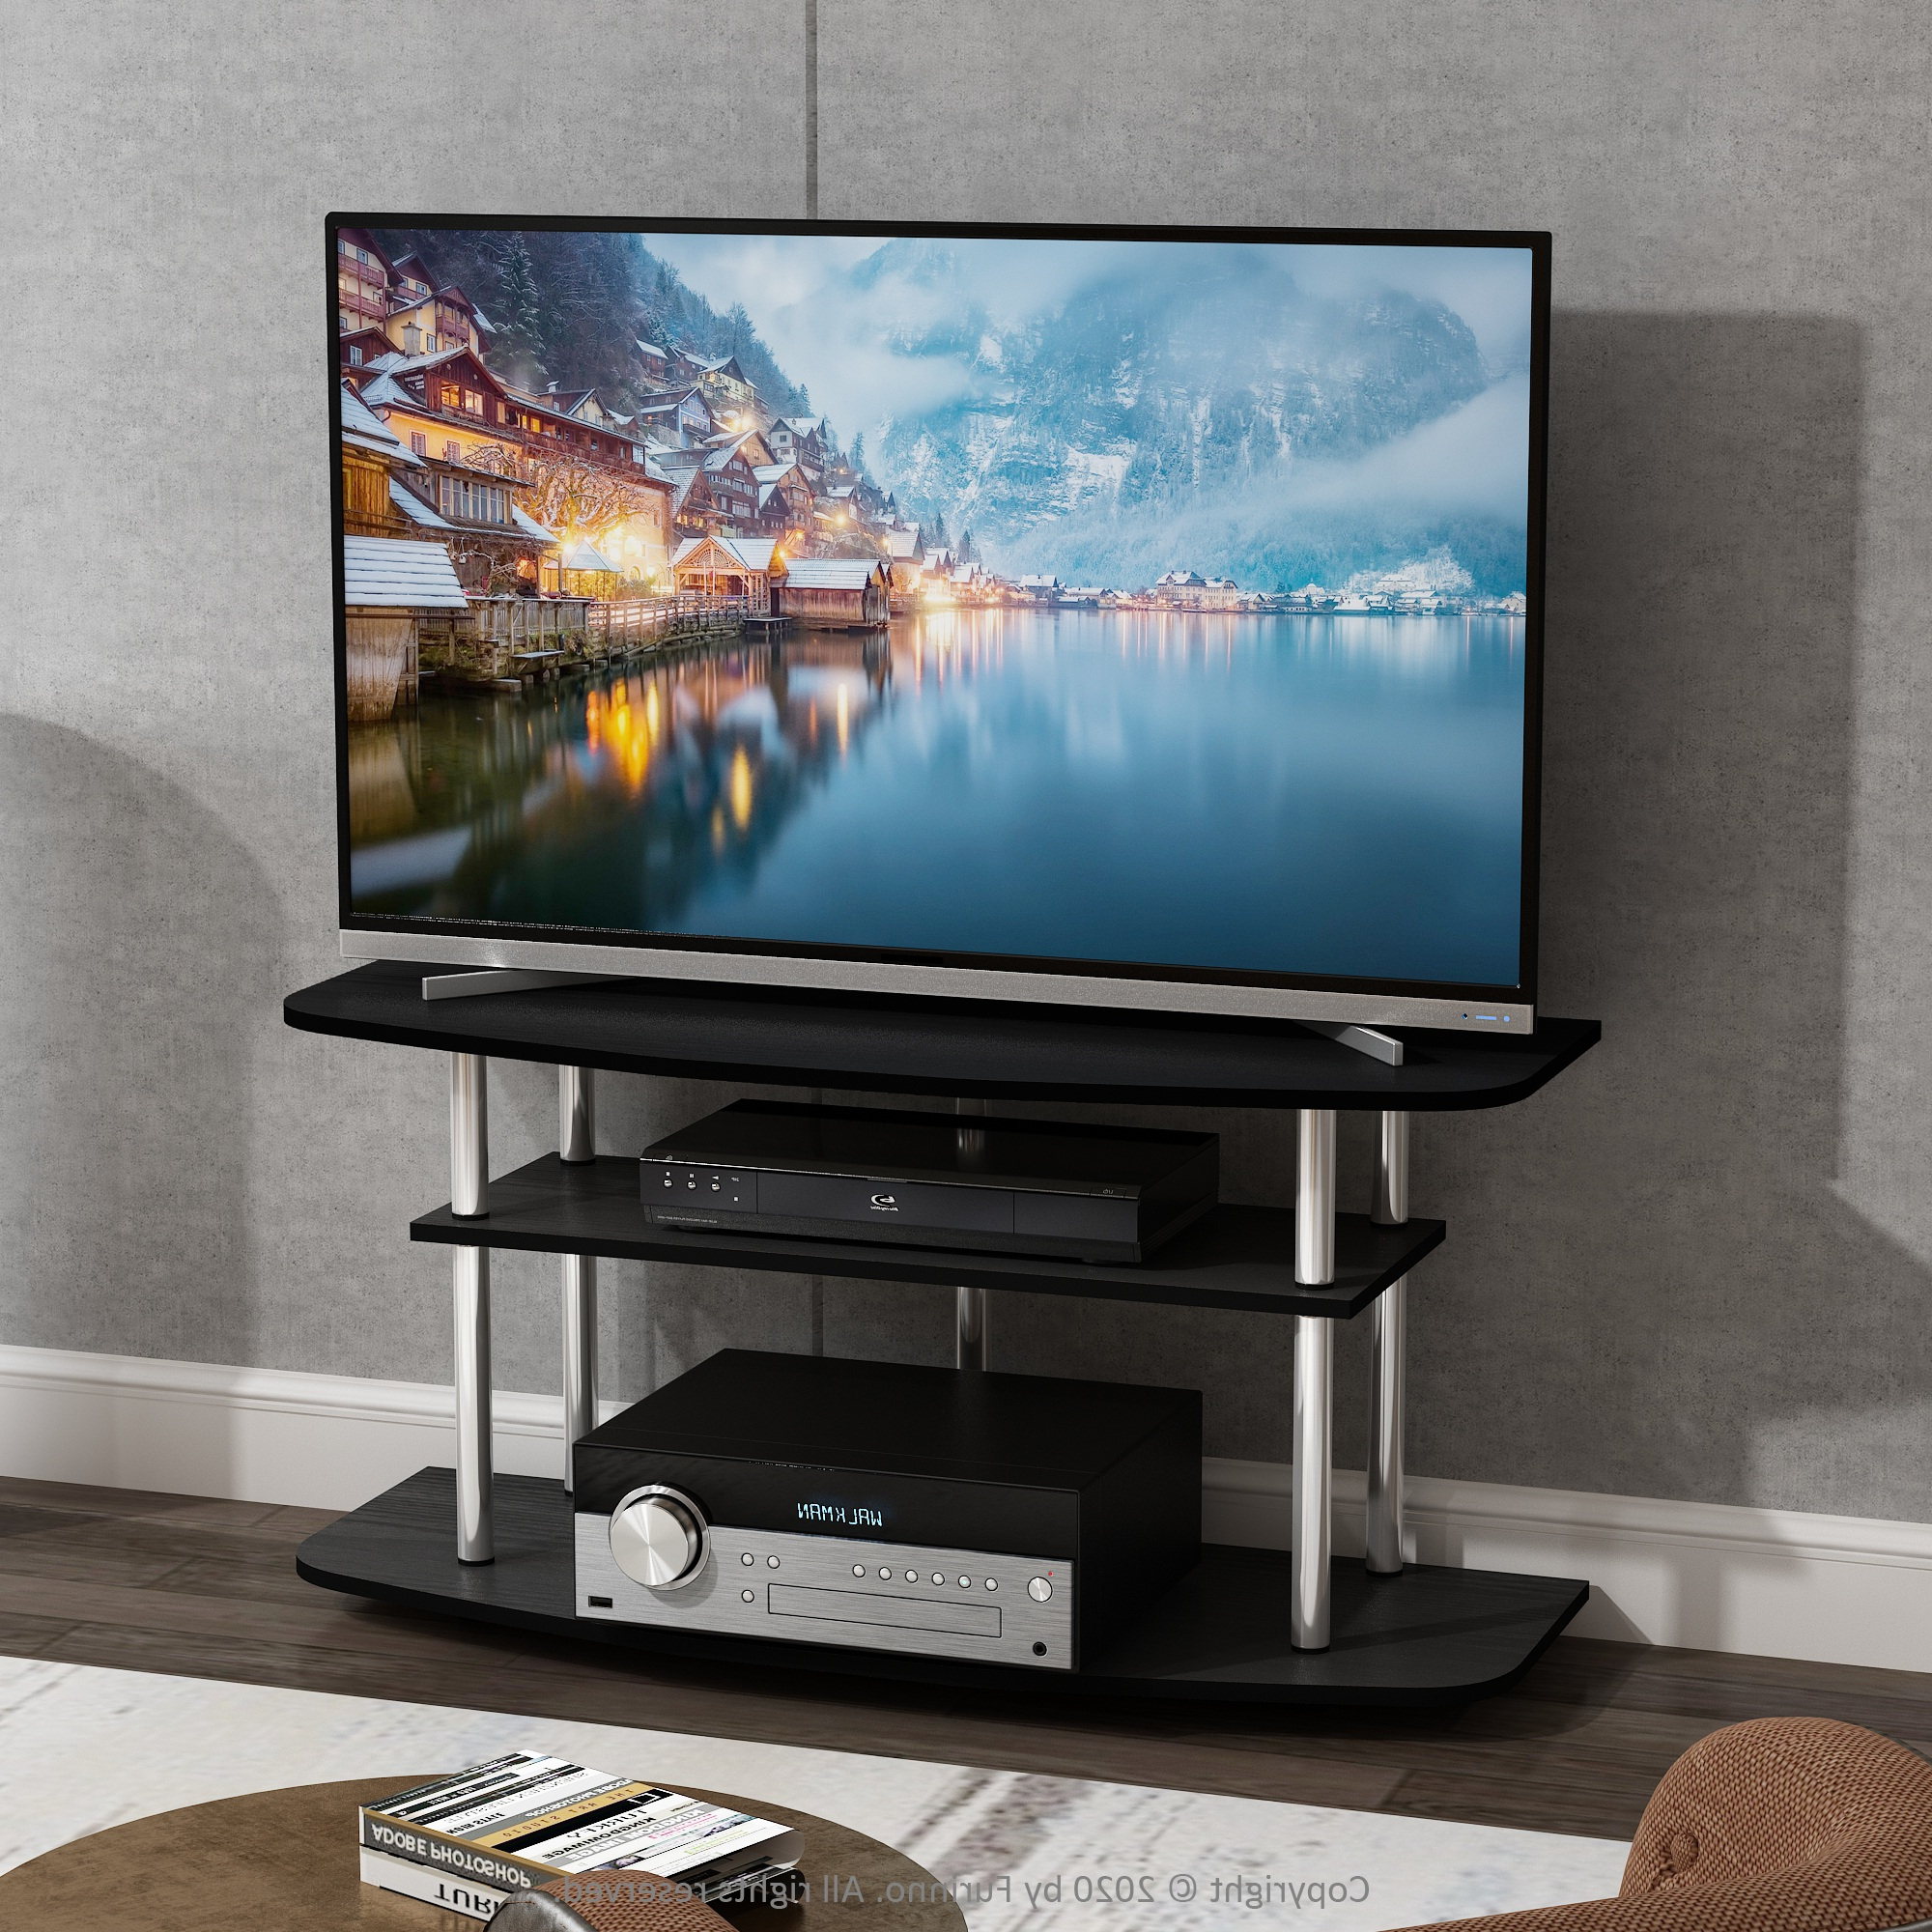 Furinno Frans Turn N Tube 3 Tier Tv Stand For Tv Up To 46 In Latest Furinno Turn N Tube No Tool 3 Tier Entertainment Tv Stands (View 1 of 10)